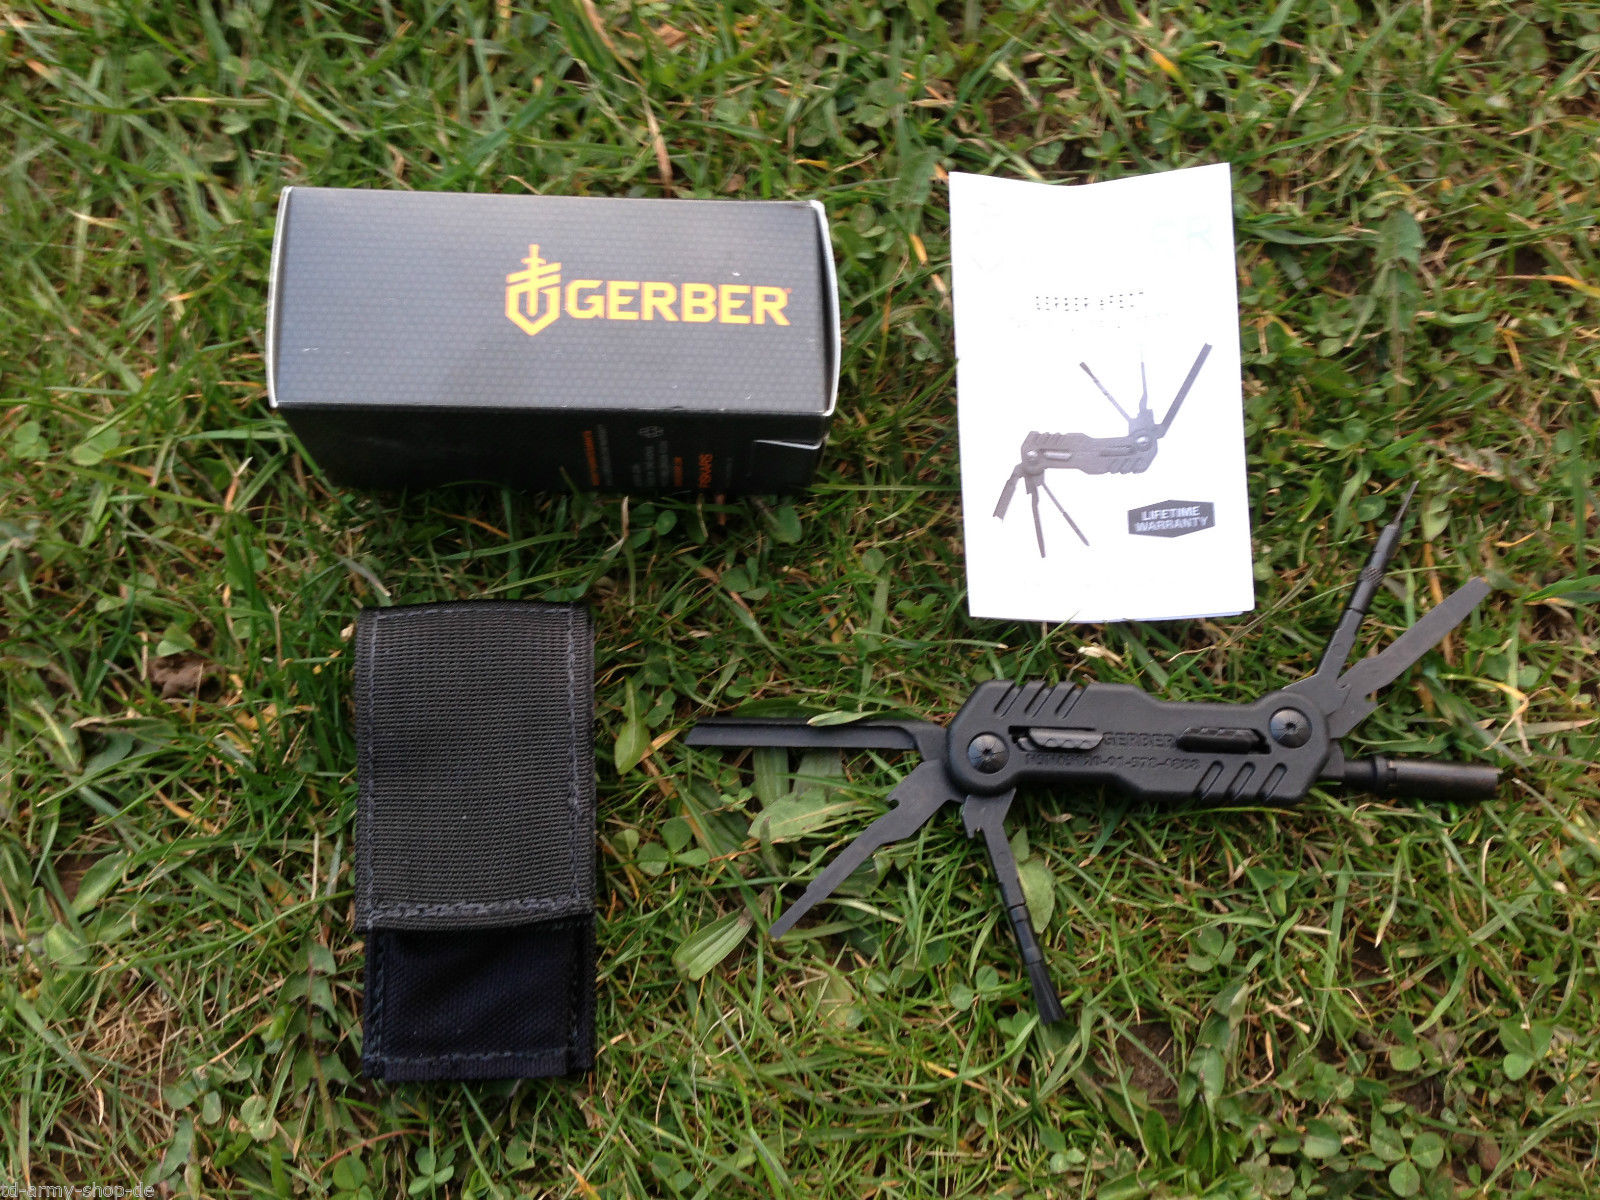 Original Army Gerber Tool eFECT 300 Weapons Tool.